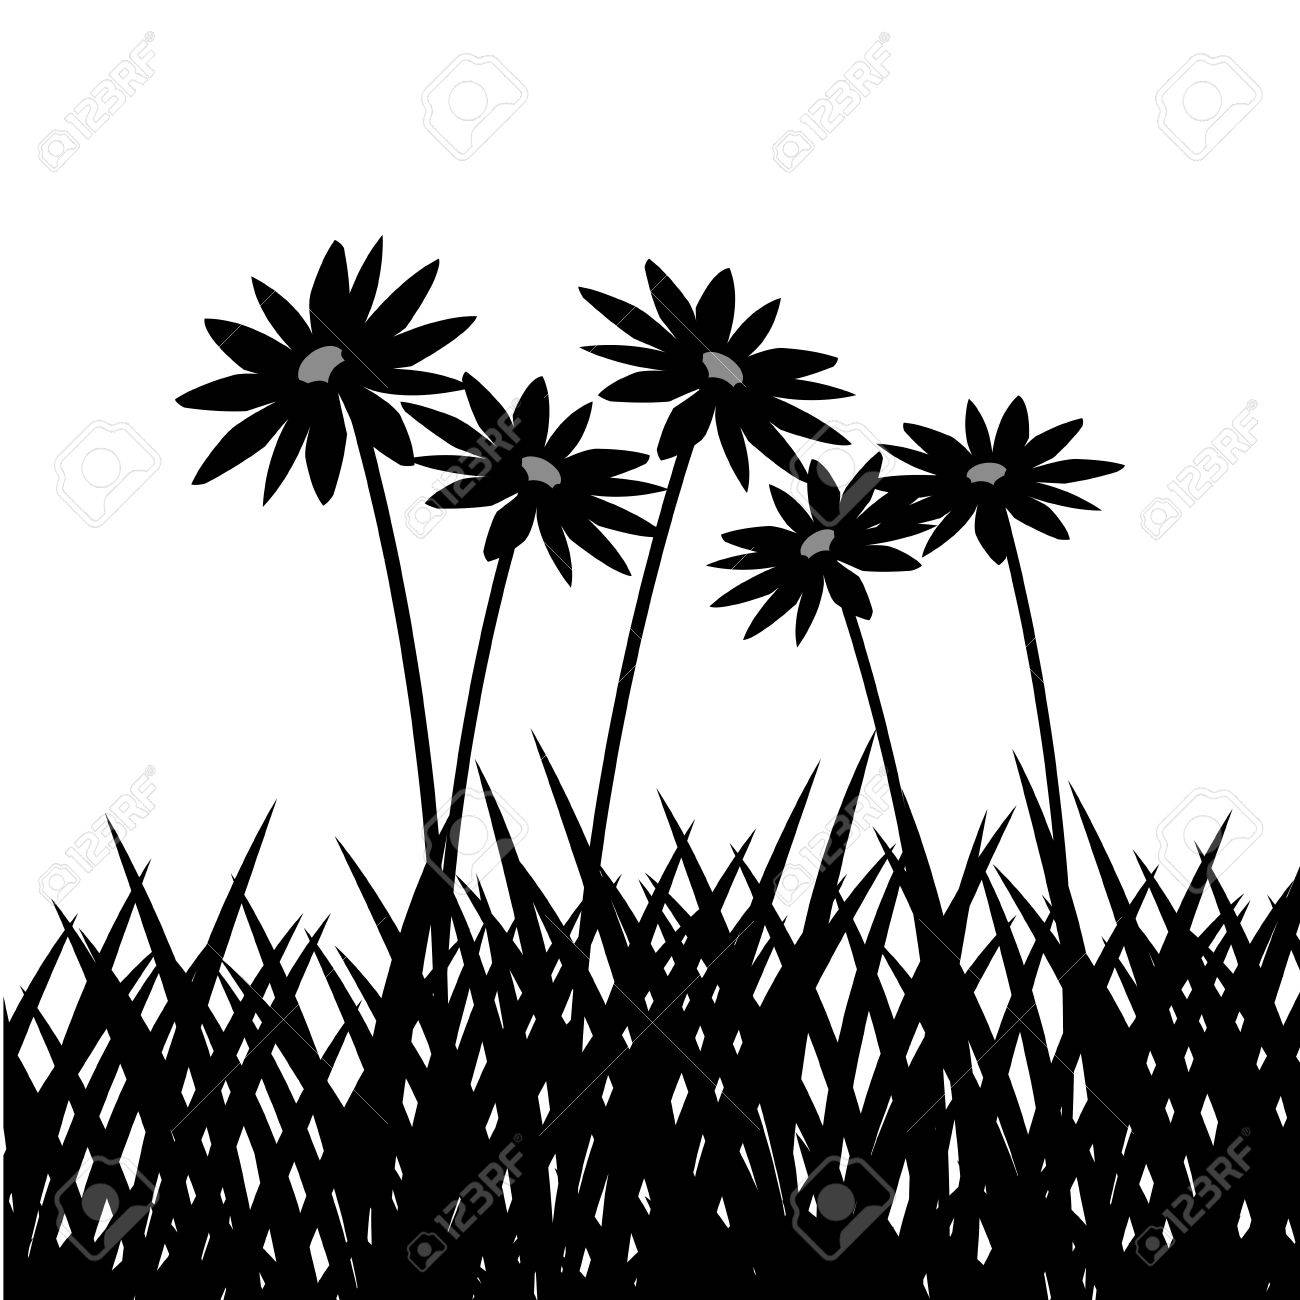 1300x1300 Grass With Flowers Icon. Silhouette Design. Lawn Plant Nature